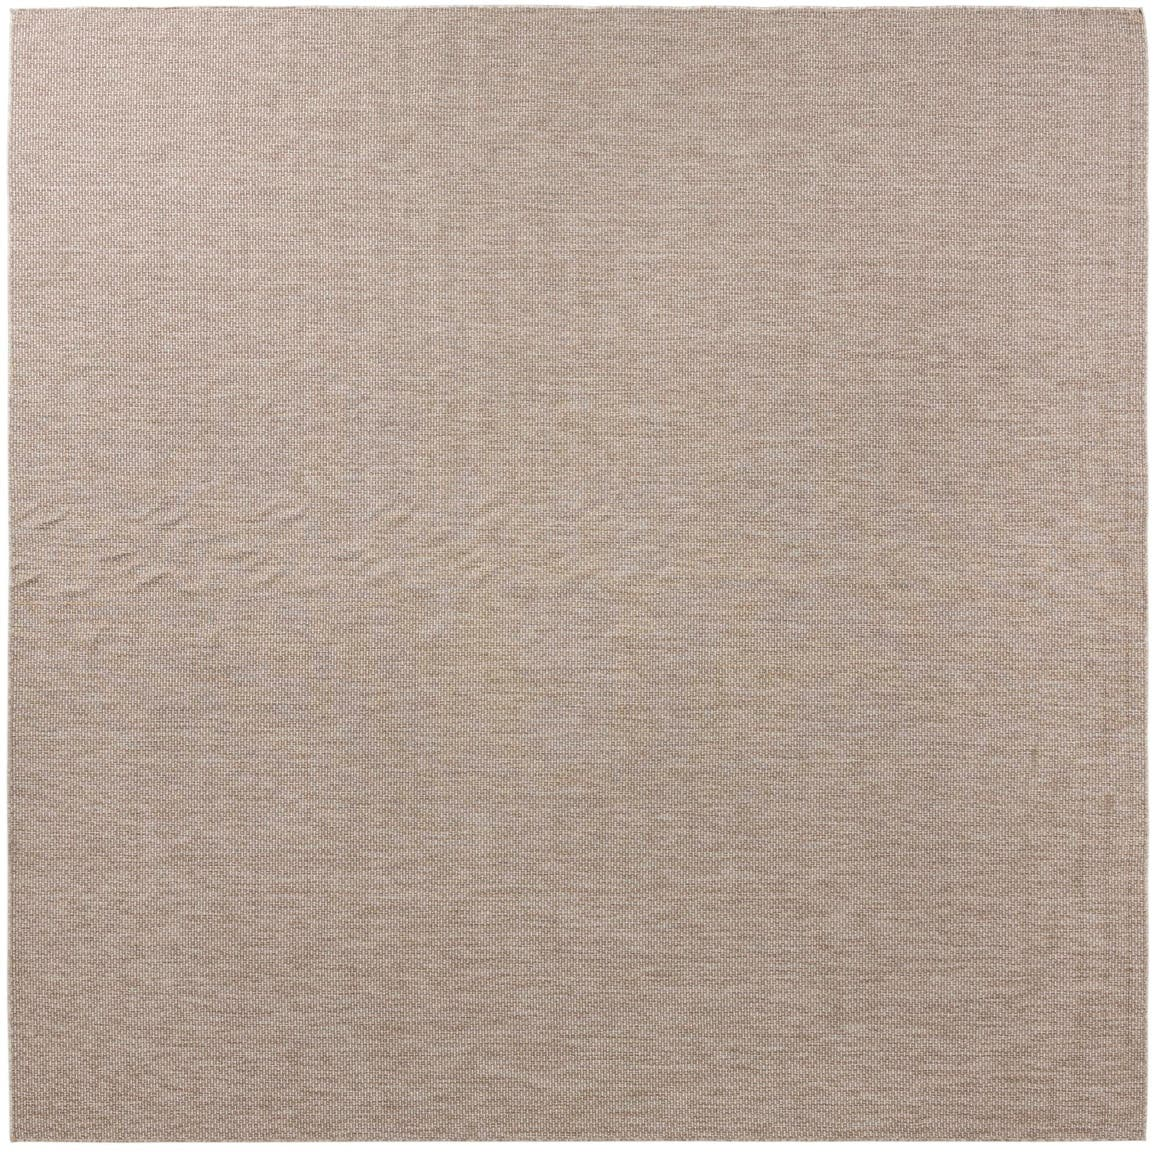 13' x 13' Outdoor Solid Square Rug main image